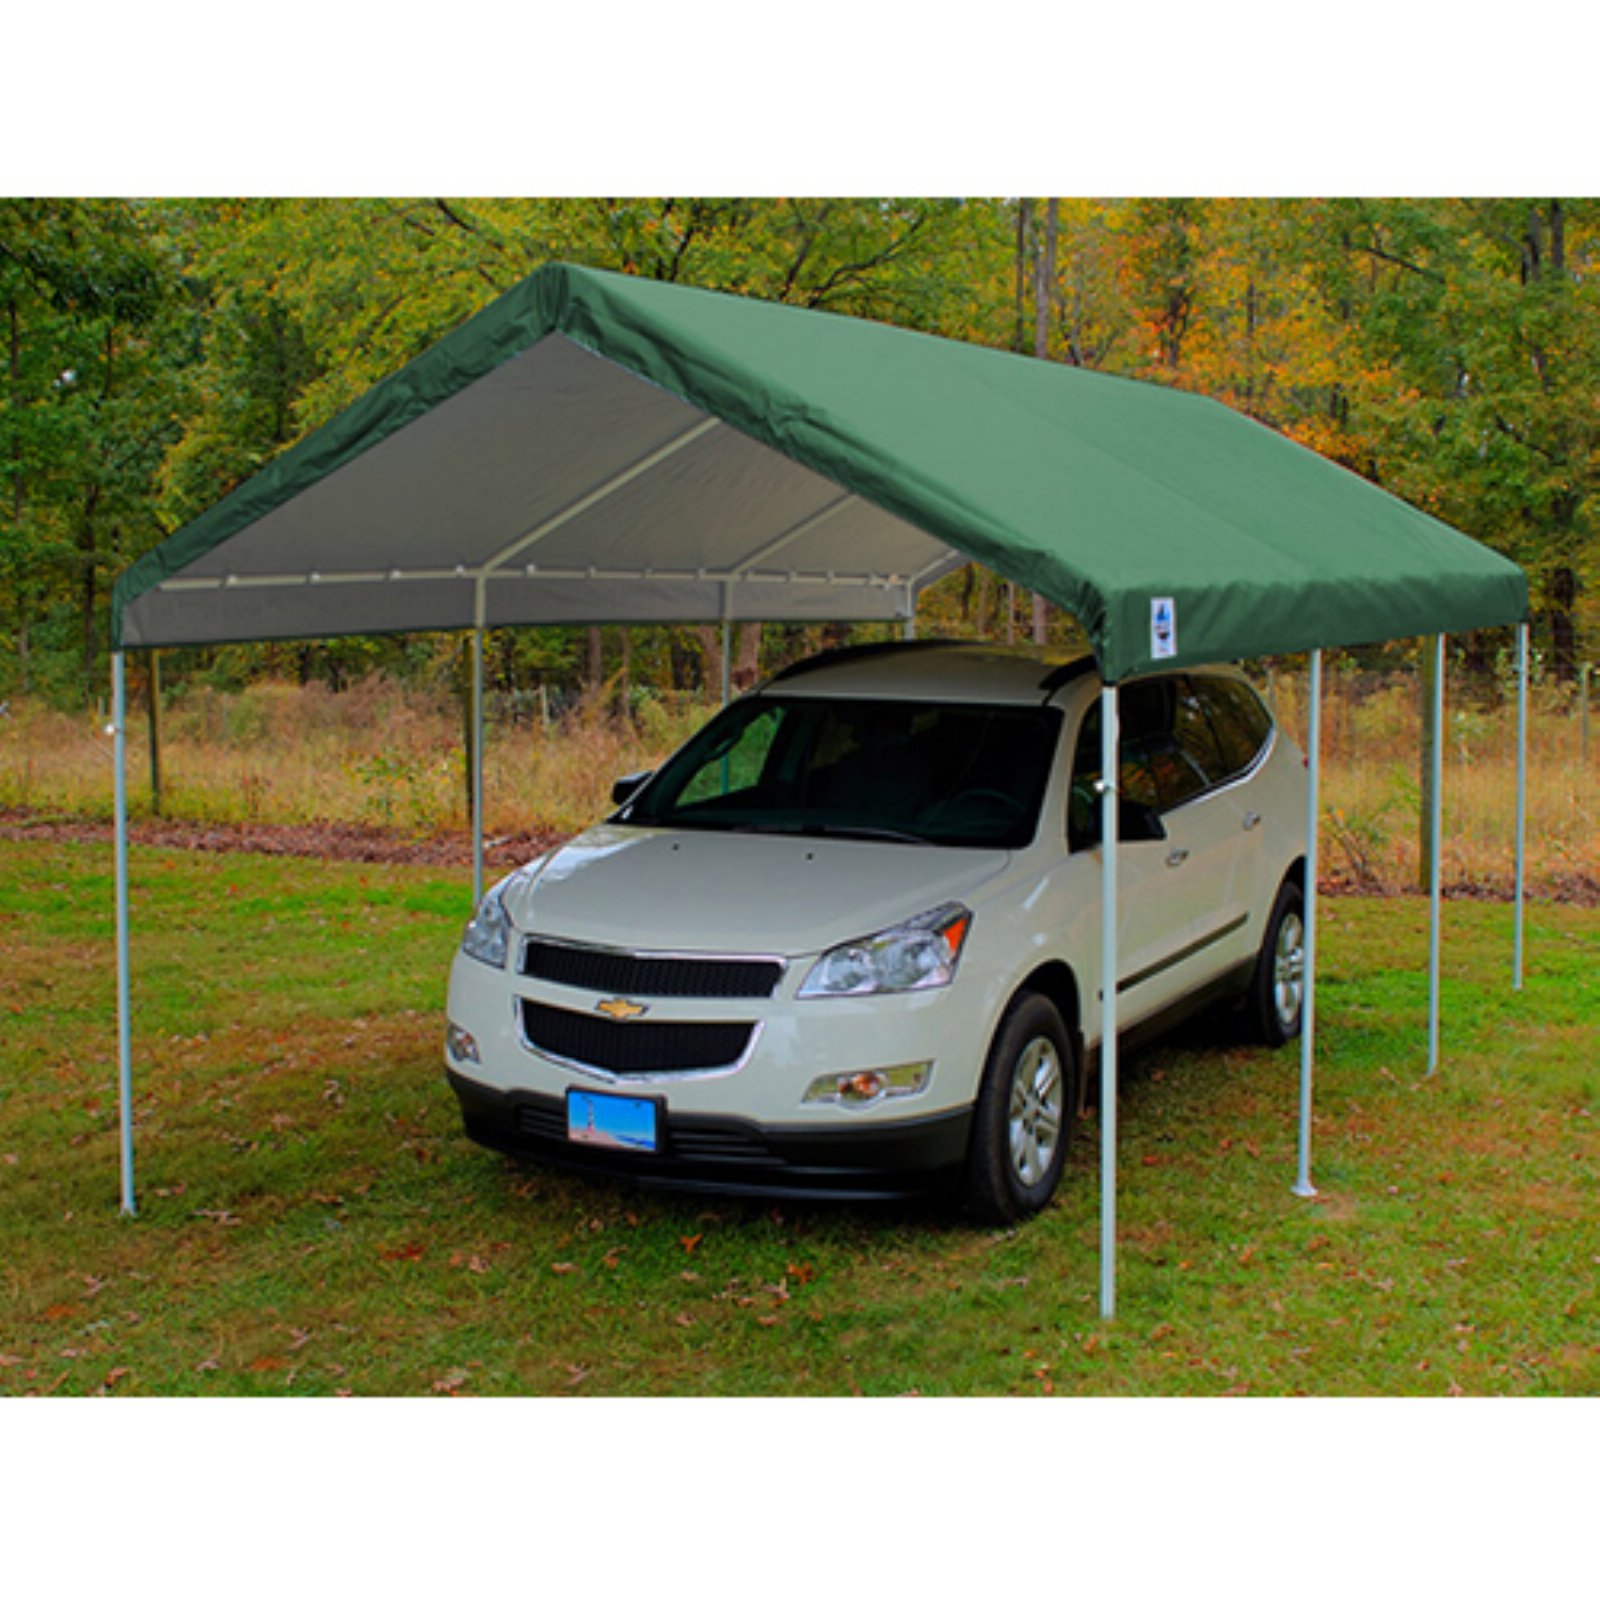 King Canopy 10 x 20 ft. Drawsting Carport Cover